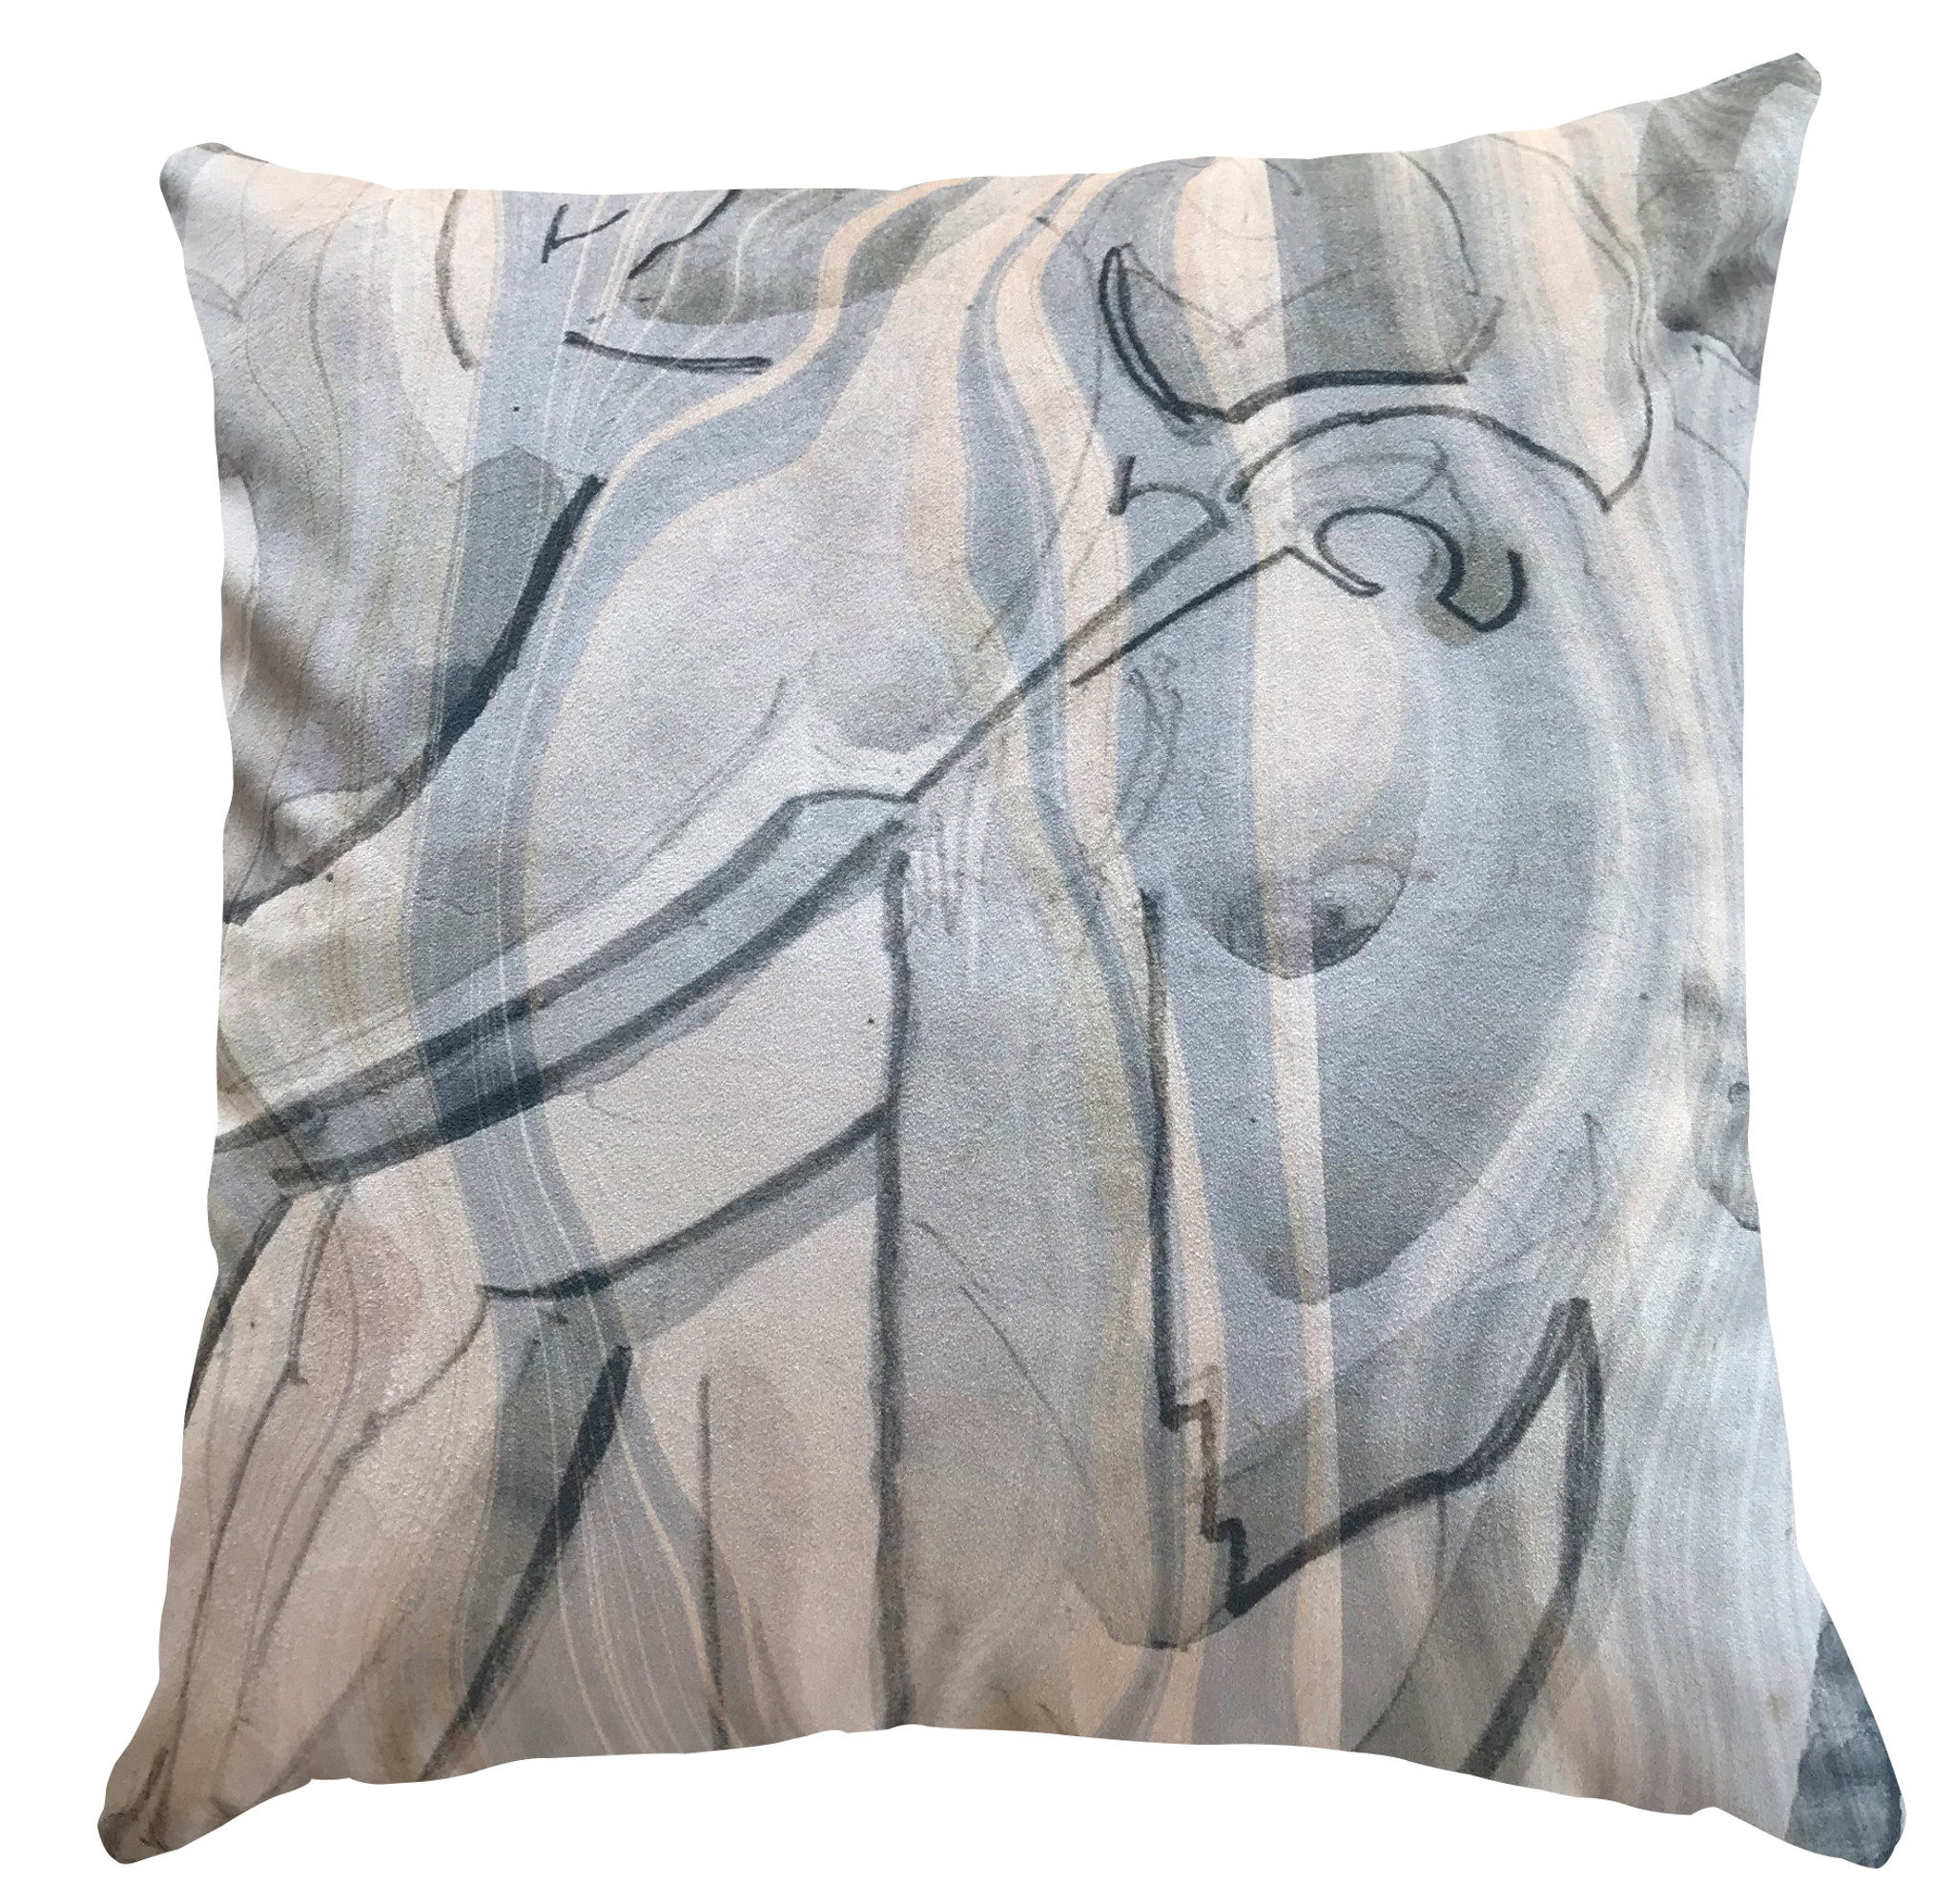 Cushion Cover - Broken Marble - Spumoni